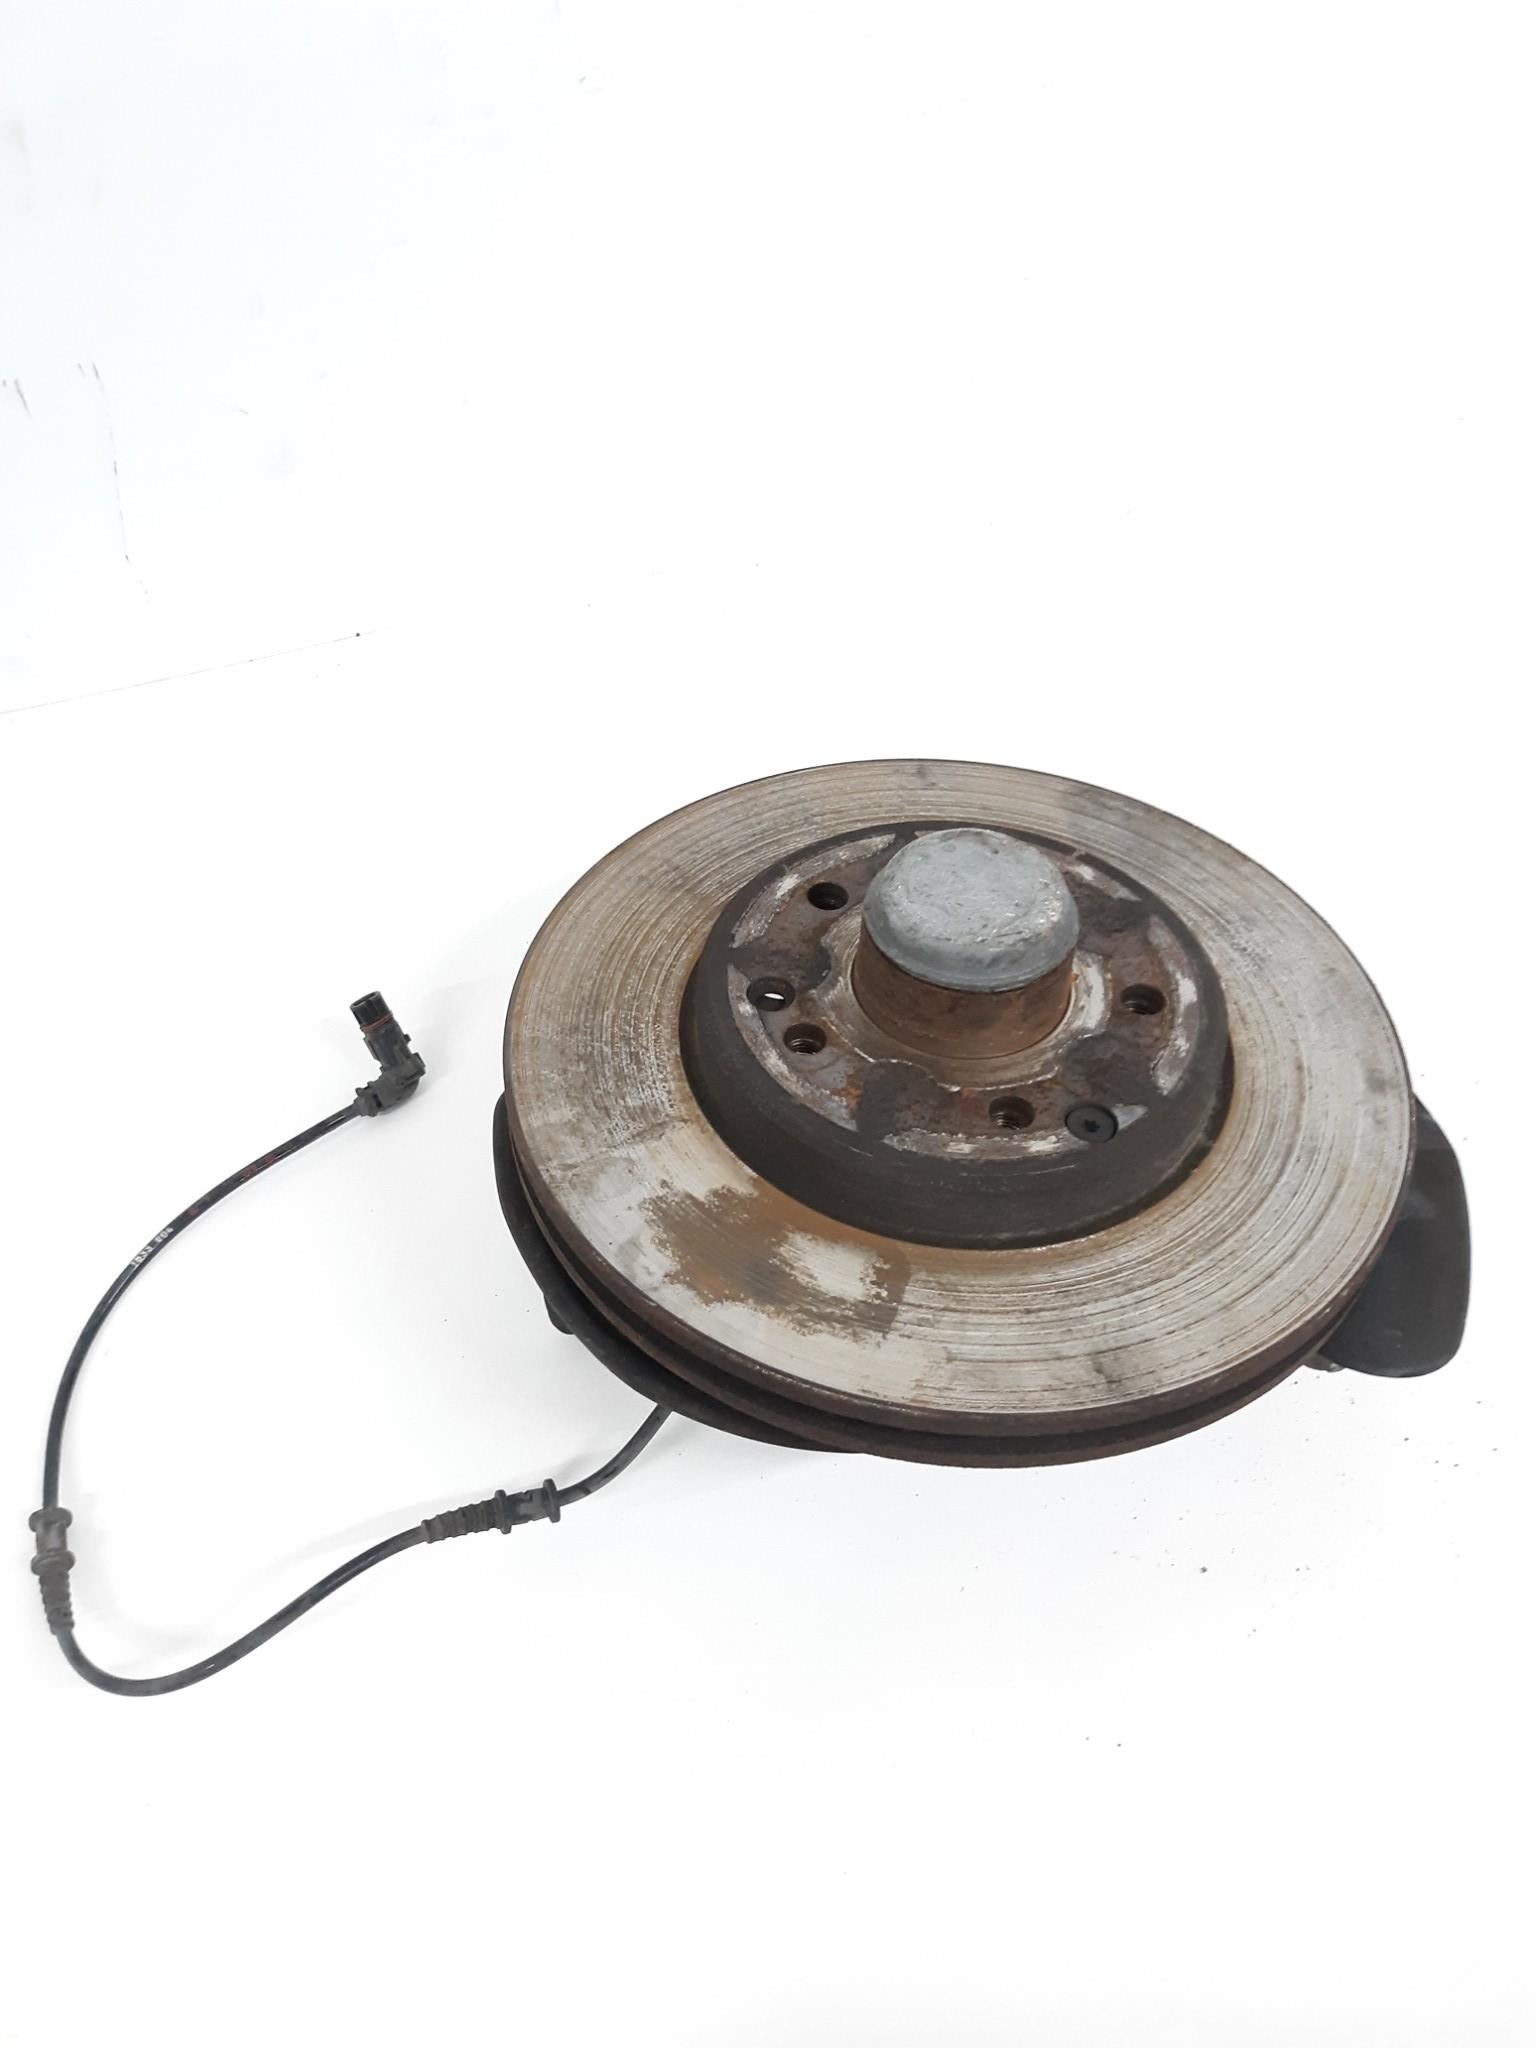 2001-2006 Mercedes Benz C240 C230 Front Left Side Spindle Knuckle OEM - Click Receive Auto Parts